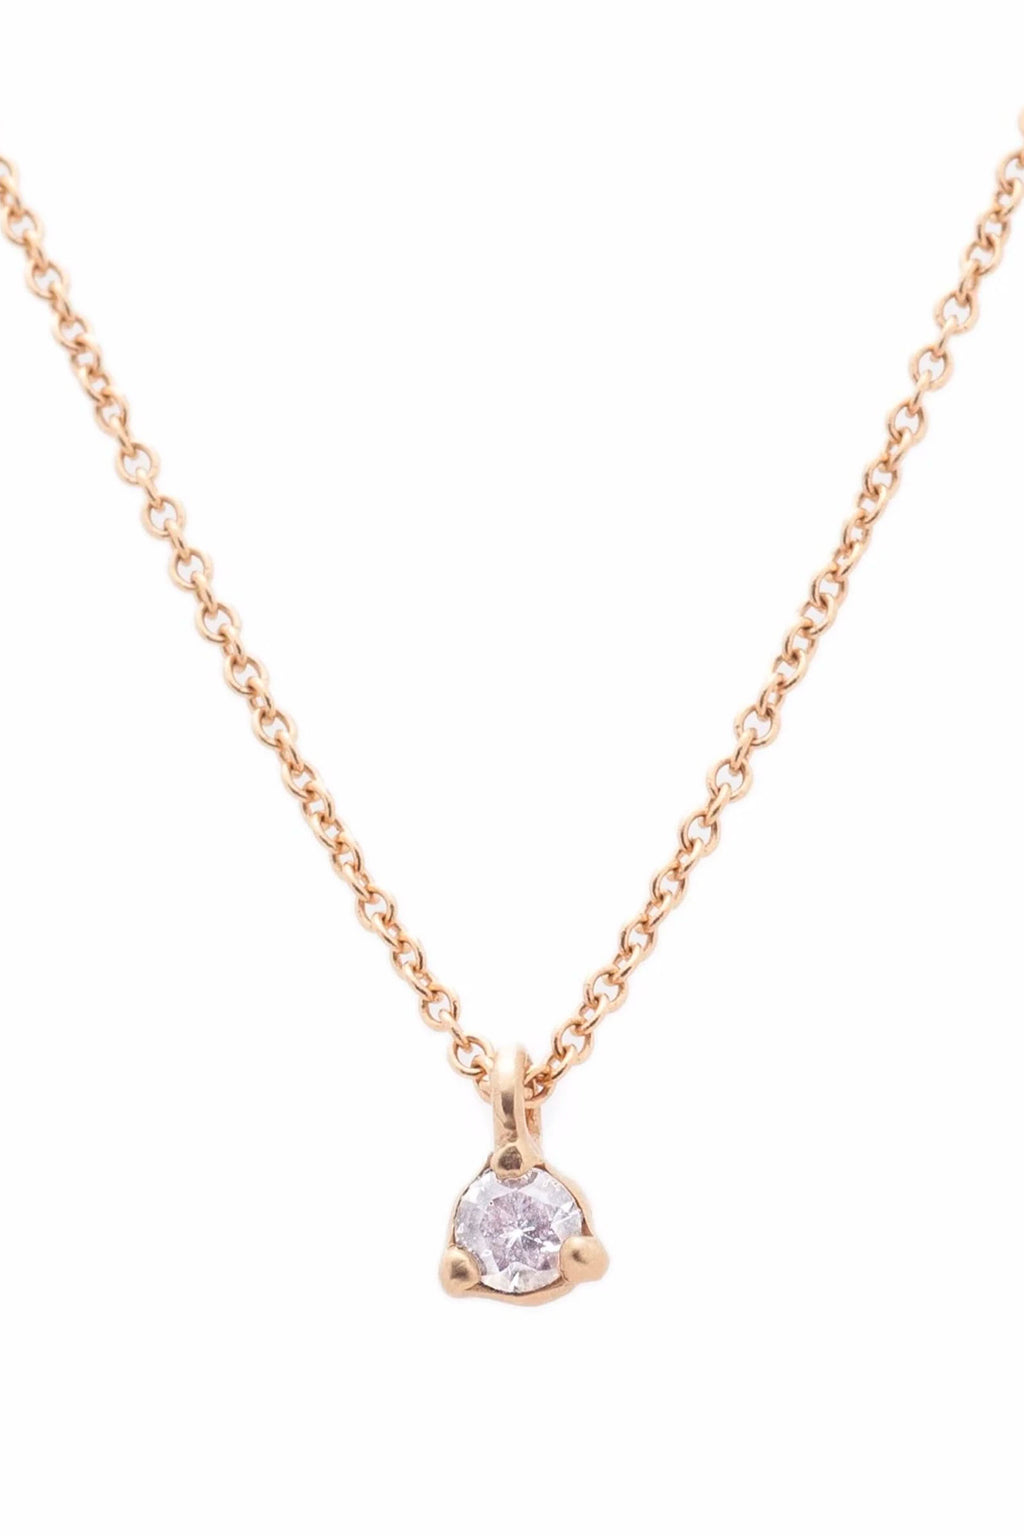 "Valley Rose Diamond Stella Necklace with 16"" Gold Chain"